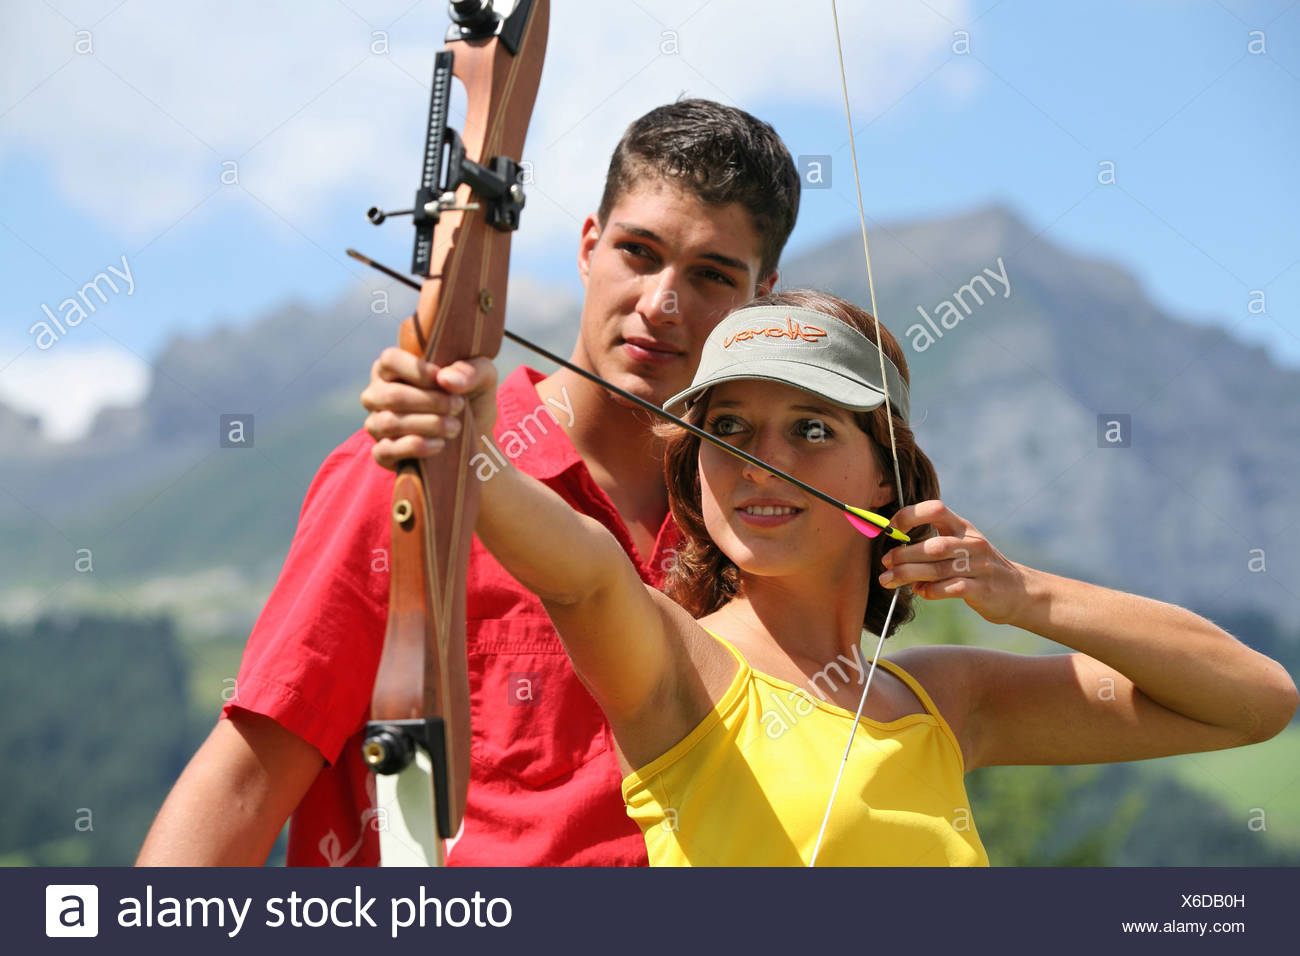 archery Outside curves arrow sighting Couple man woman weapon arms firearm sports precision sport shooter - Stock Image